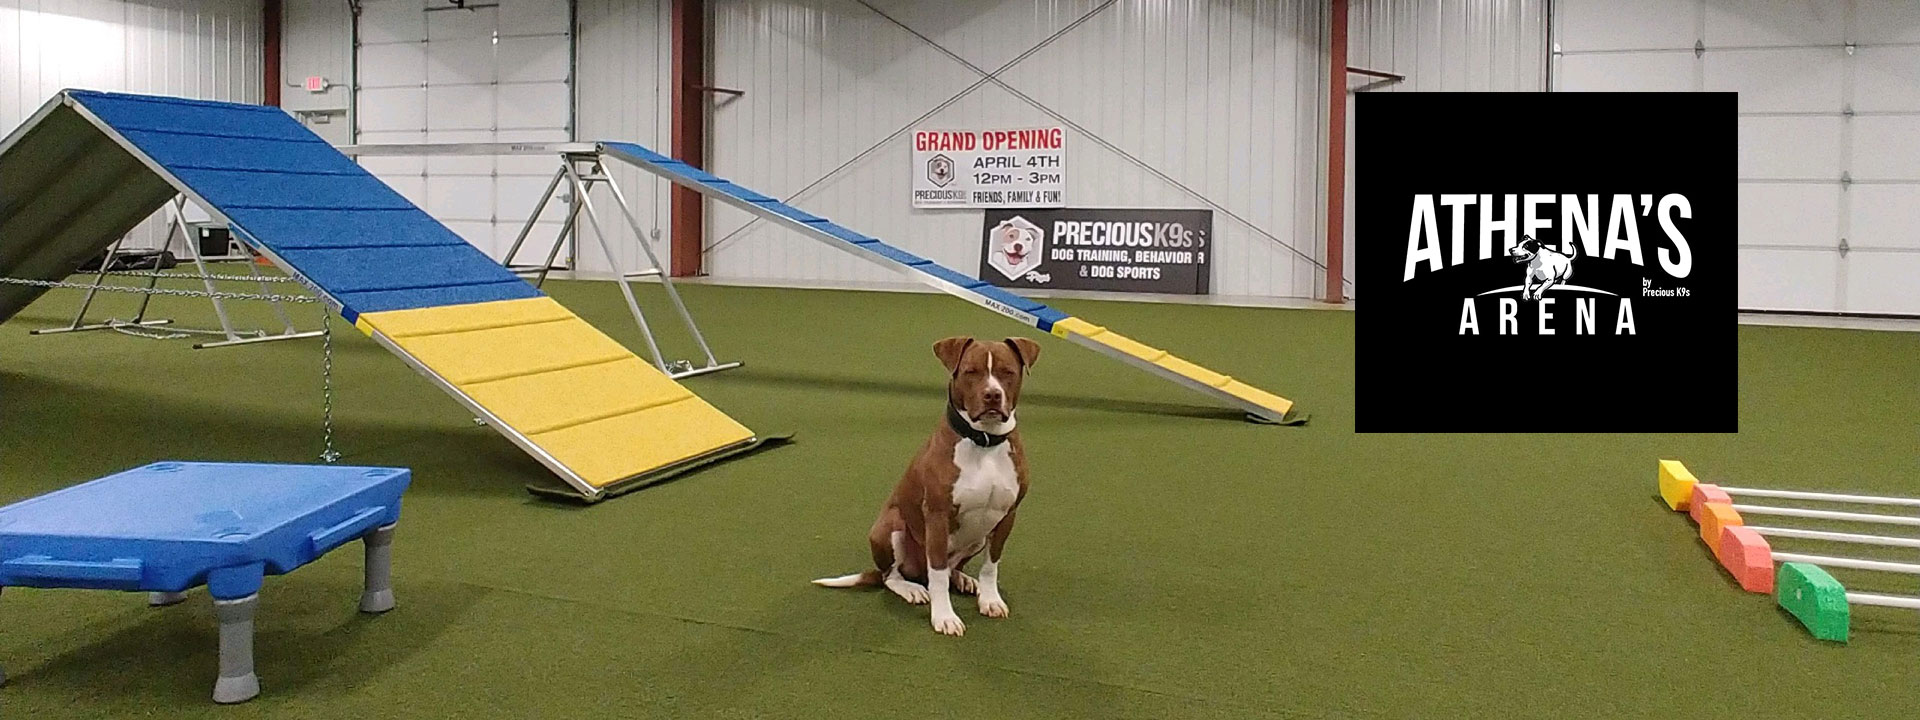 Precious-K9s-dog-training-near-springfield-missouri-mo-4854-South-State-Hwy-ff-arena-7-athenas-arena